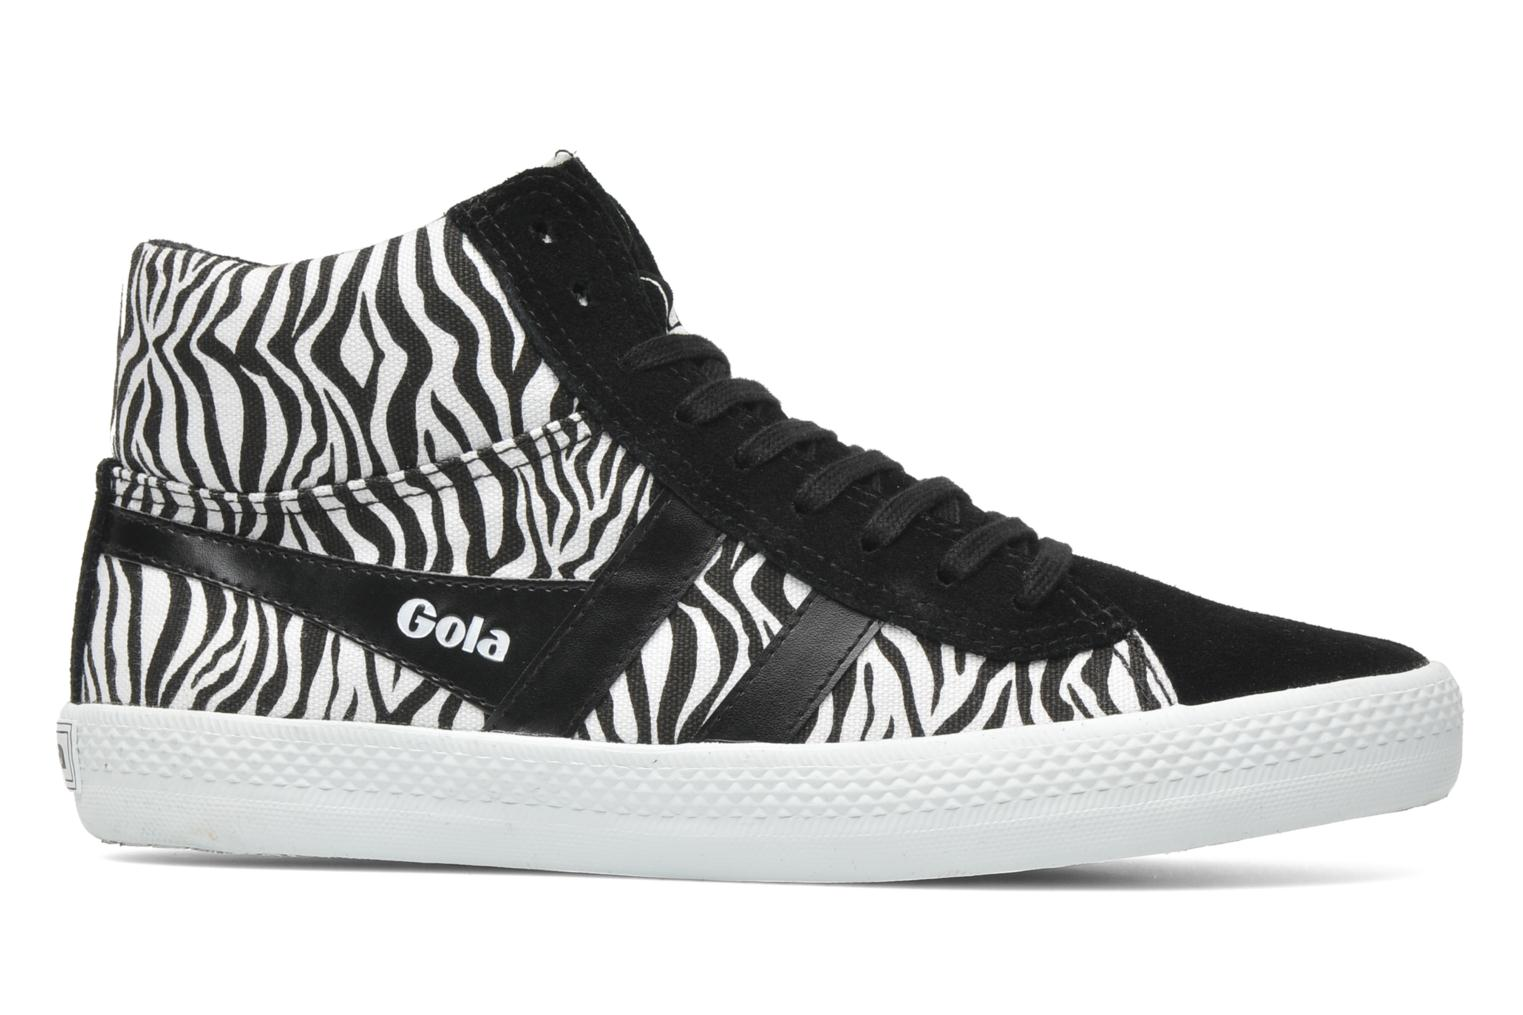 CYCLONE SAFARI Black/zebra